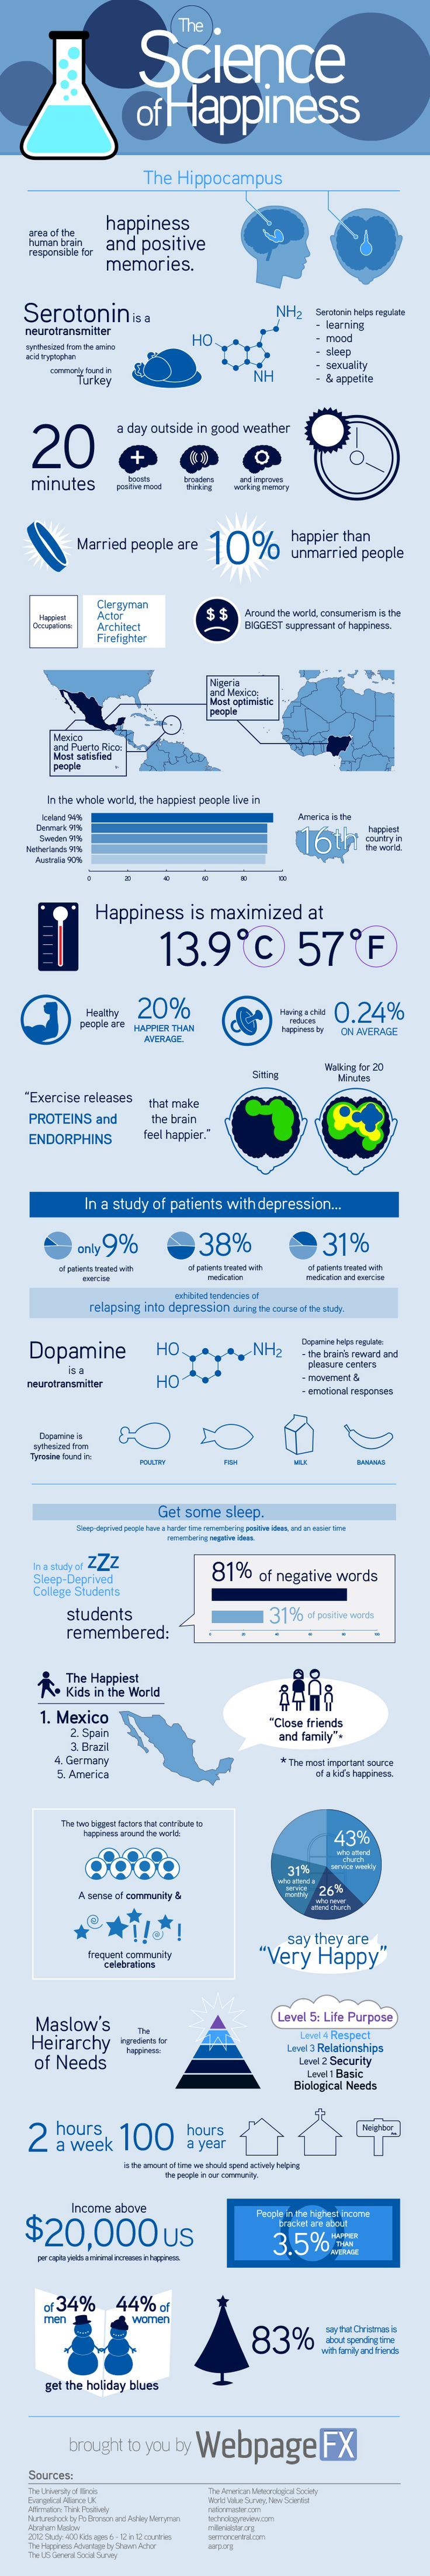 Psychology : The science of happiness explained in one infographic